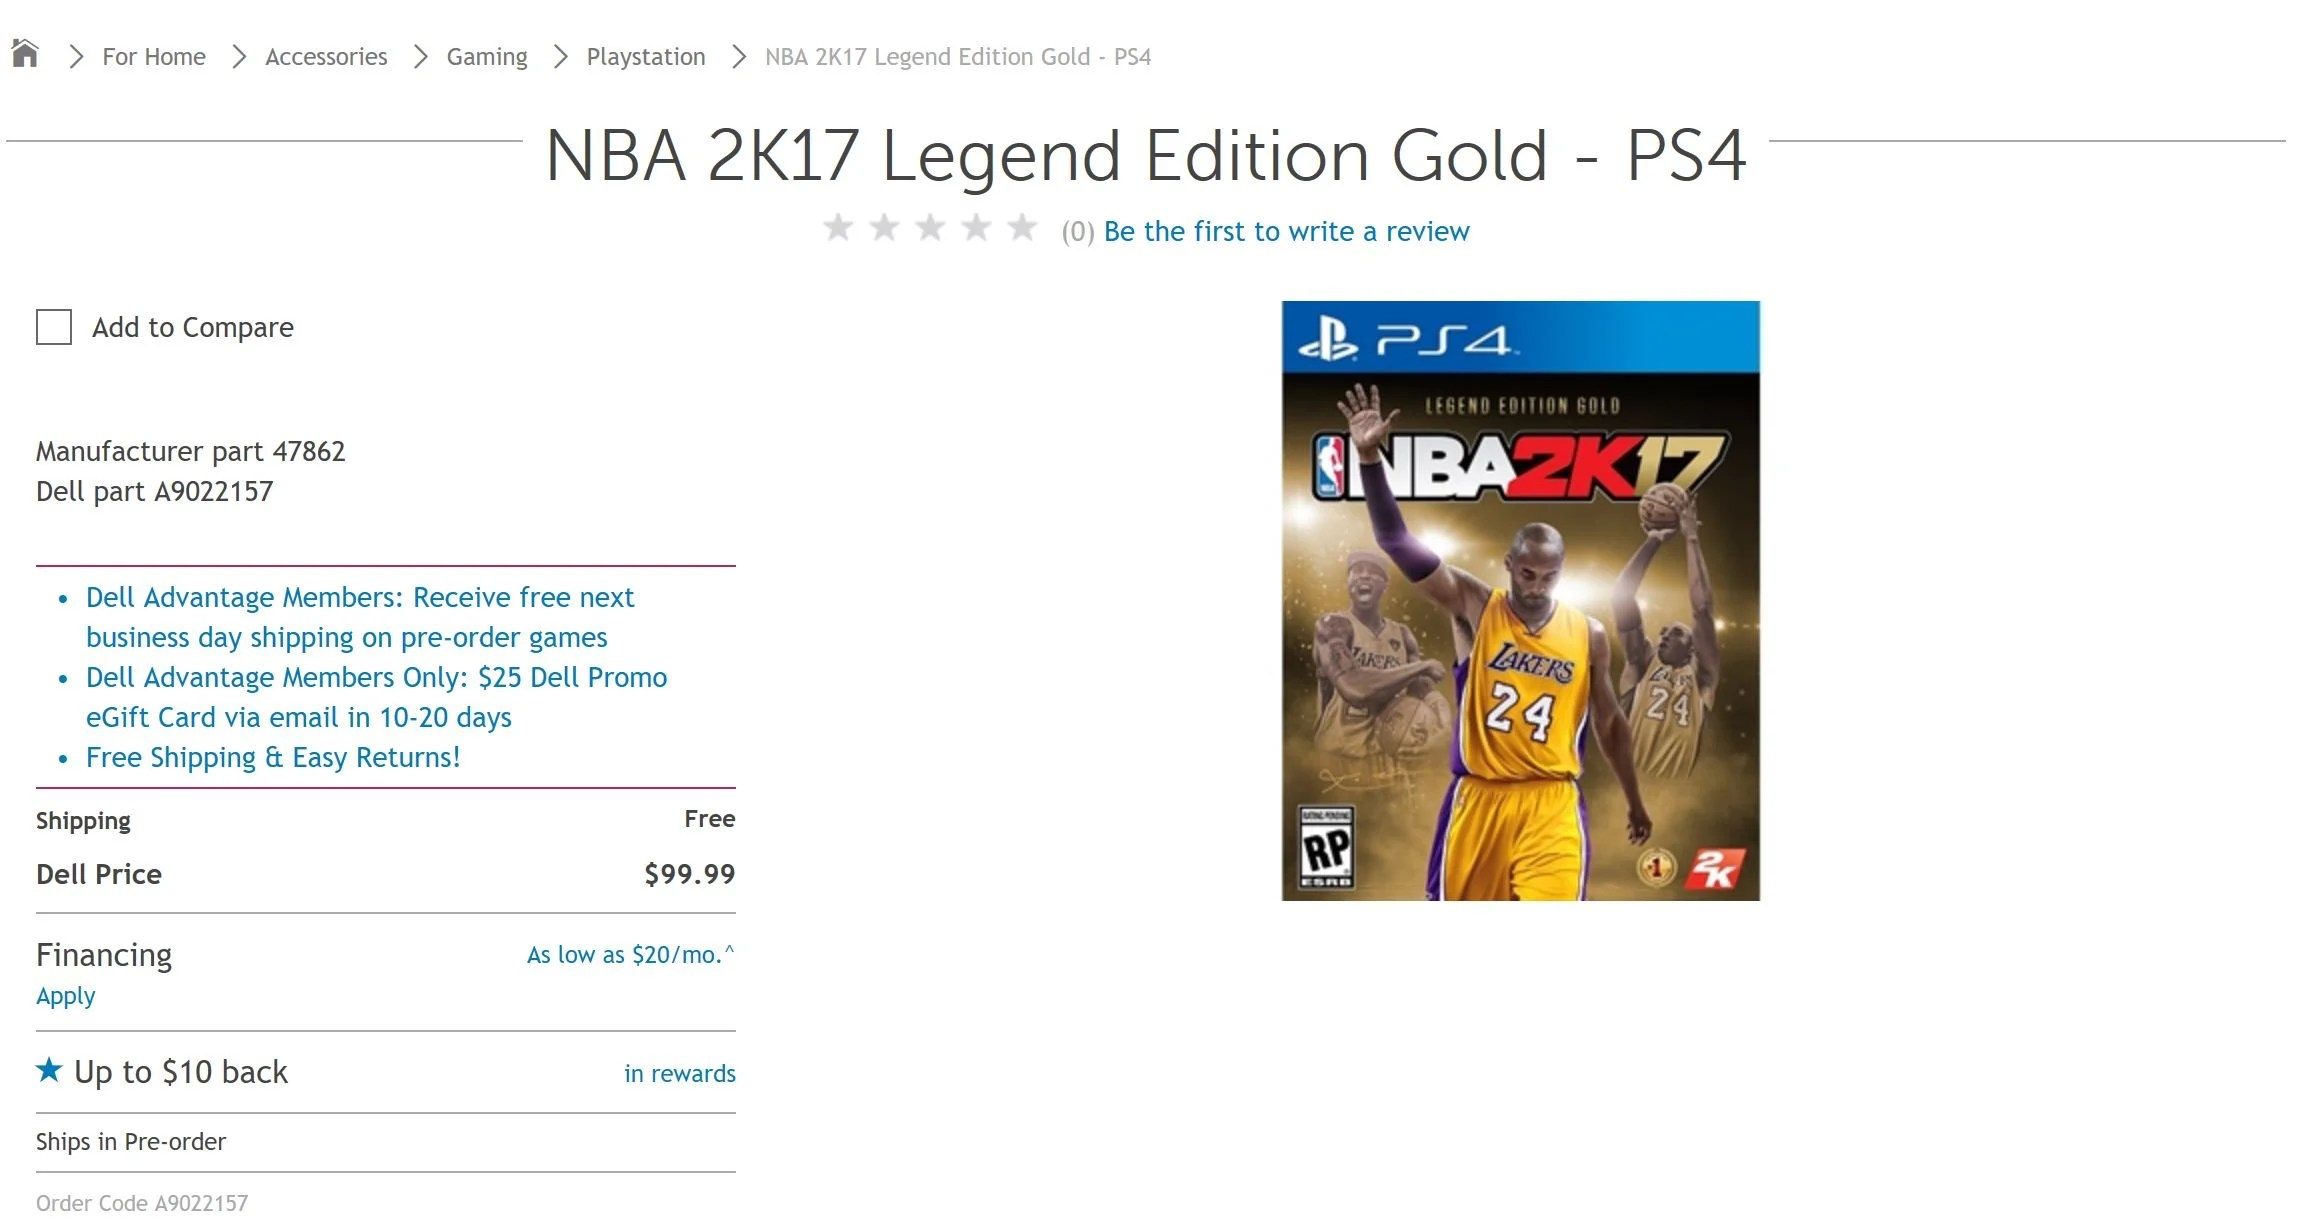 National Basketball Association 2K17 Prelude is available to download on PS4 and Xbox One